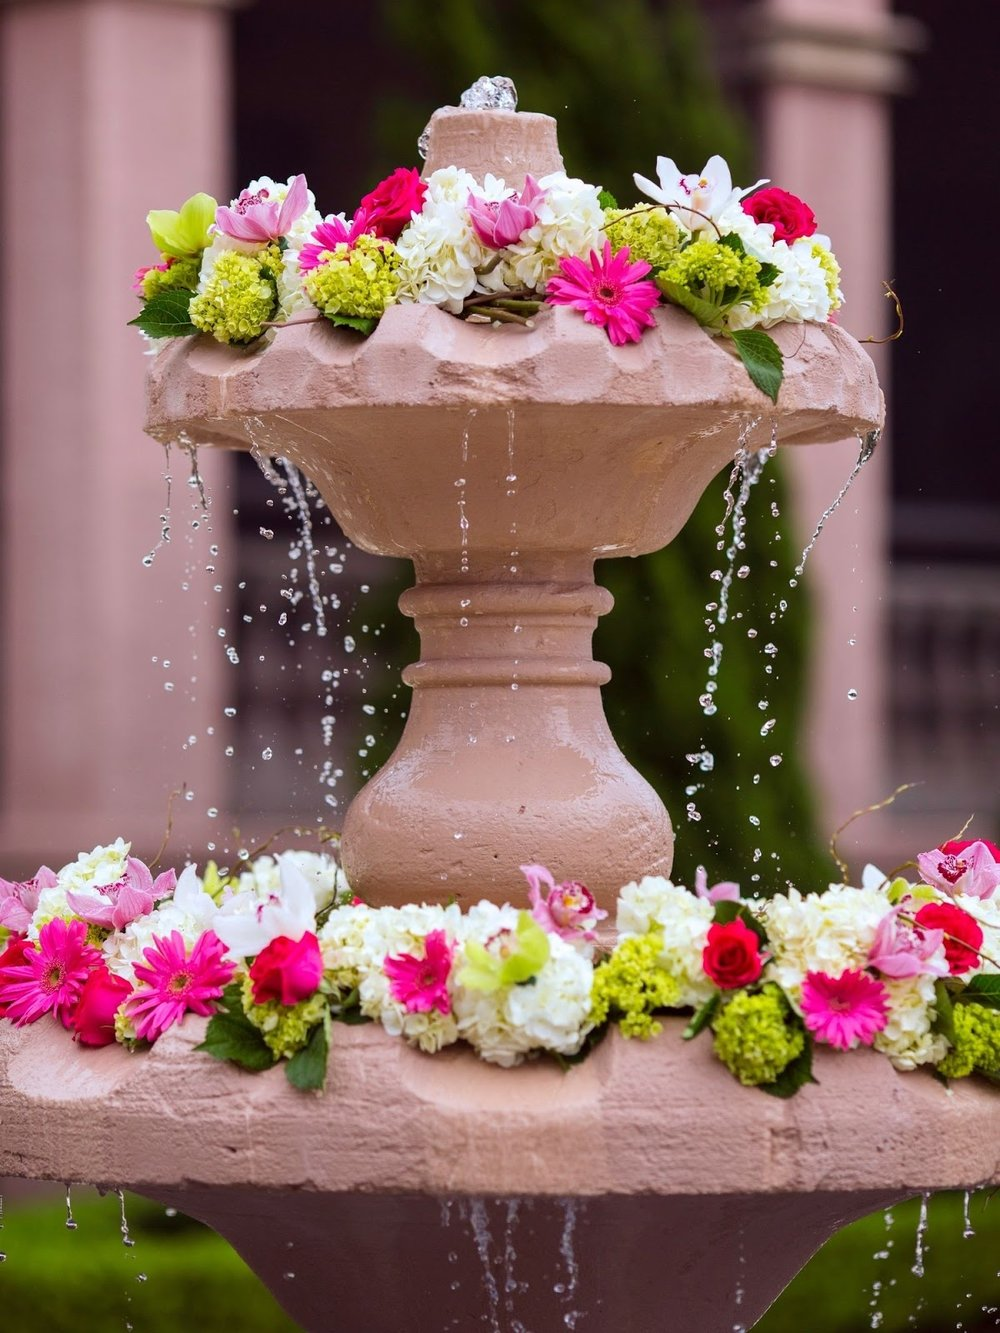 Photo Credit Jensen Larsen Photography  Fresh flowers laid on flowing water. Do you love vibrant colors?